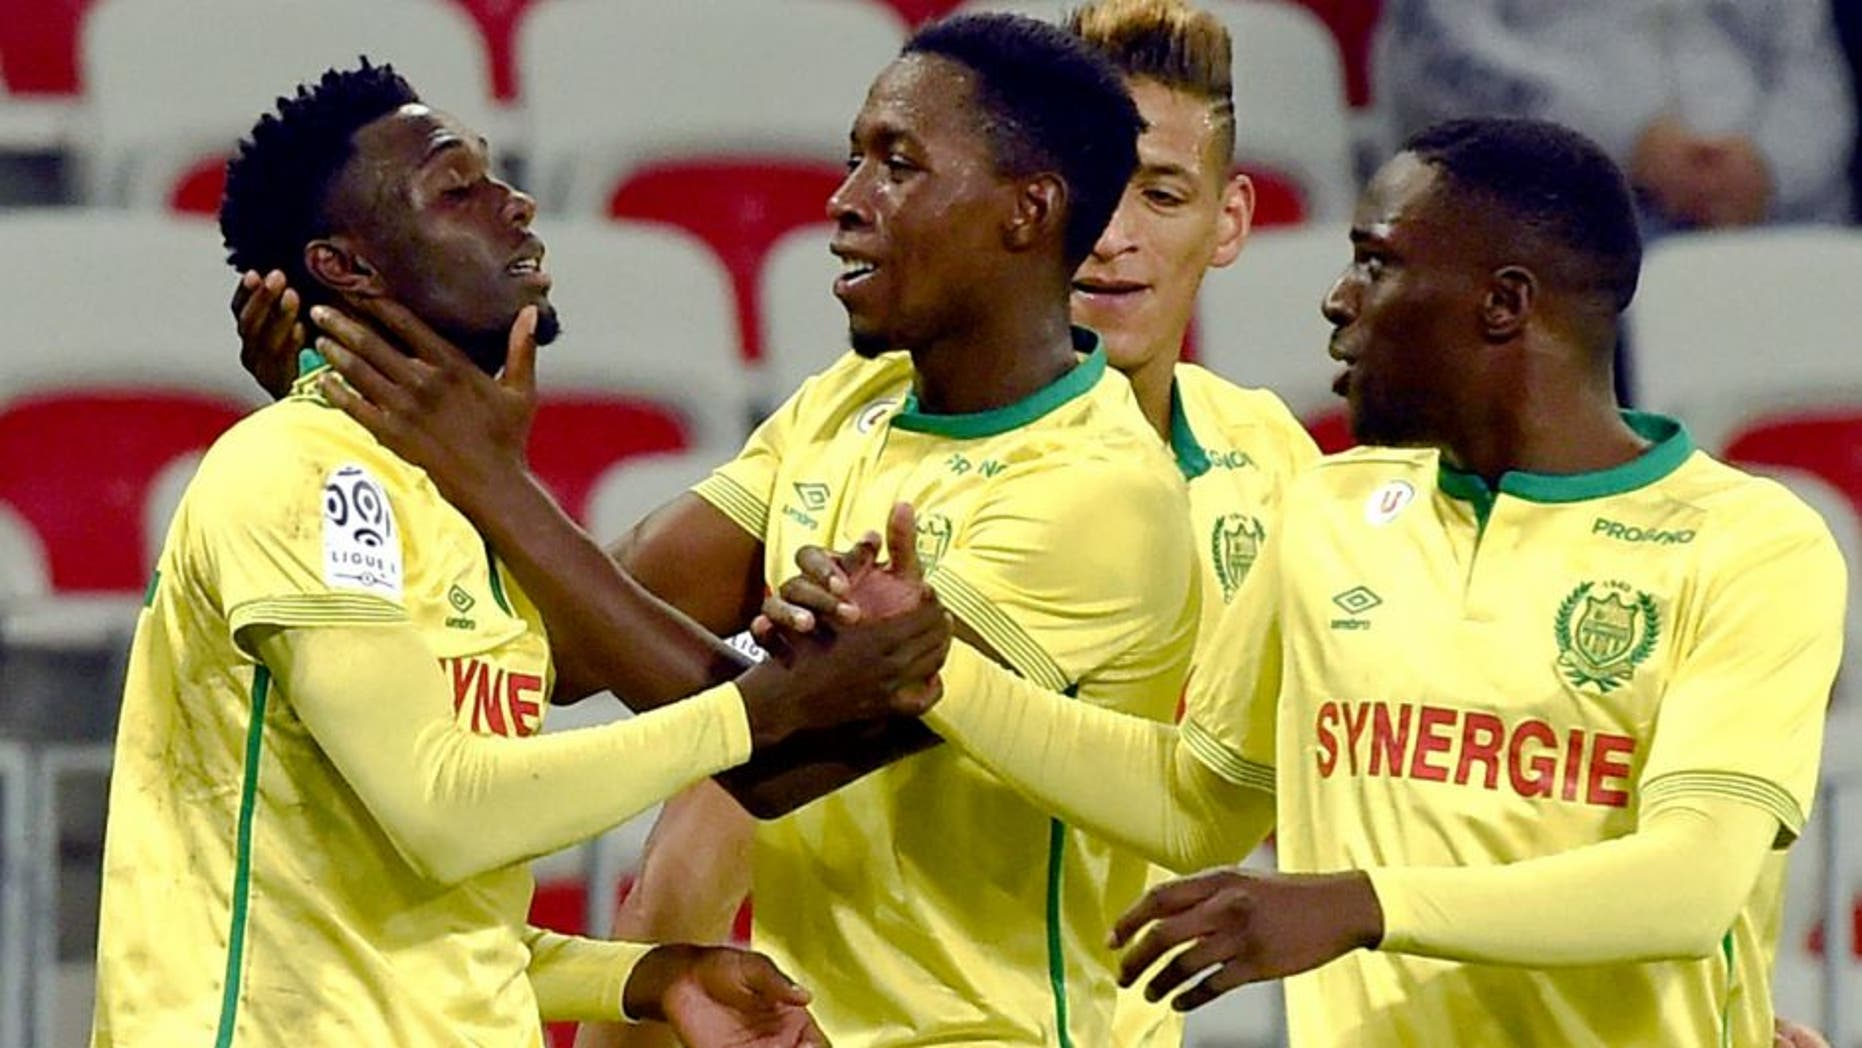 Nantes' forward Alexis Alegue Elandi (L) celebrates with teammates after scoring a goal during the French Ligue 1 football match between Nice and Nantes, on November 4, 2015 at the Allianz Riviera Stadium in Nice, southern France.. AFP PHOTO / ANNE-CHRISTINE POUJOULAT (Photo credit should read ANNE-CHRISTINE POUJOULAT/AFP/Getty Images)